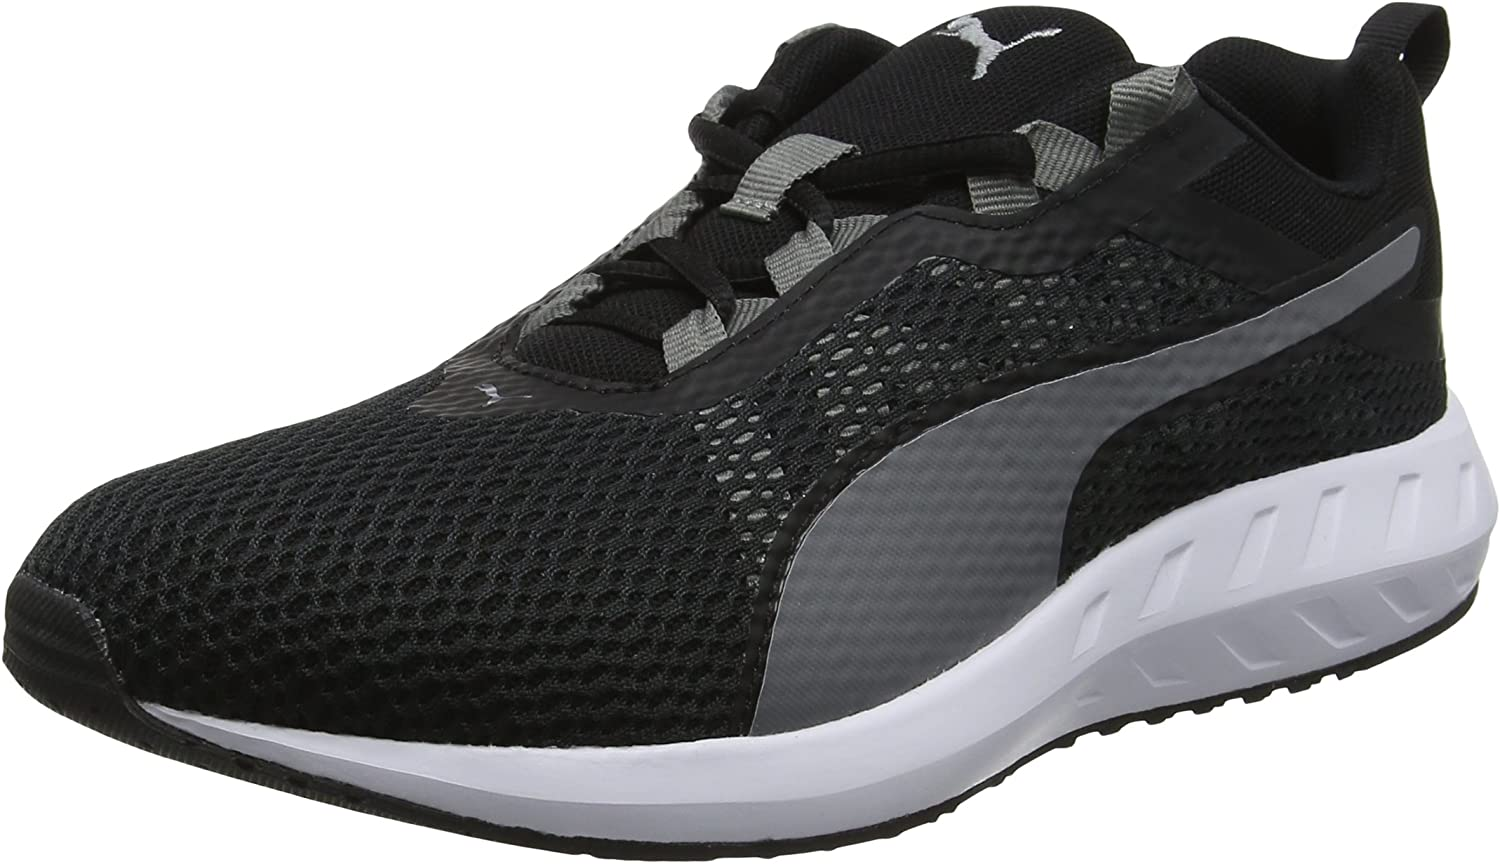 Puma Men's Flare 2 Running shoes